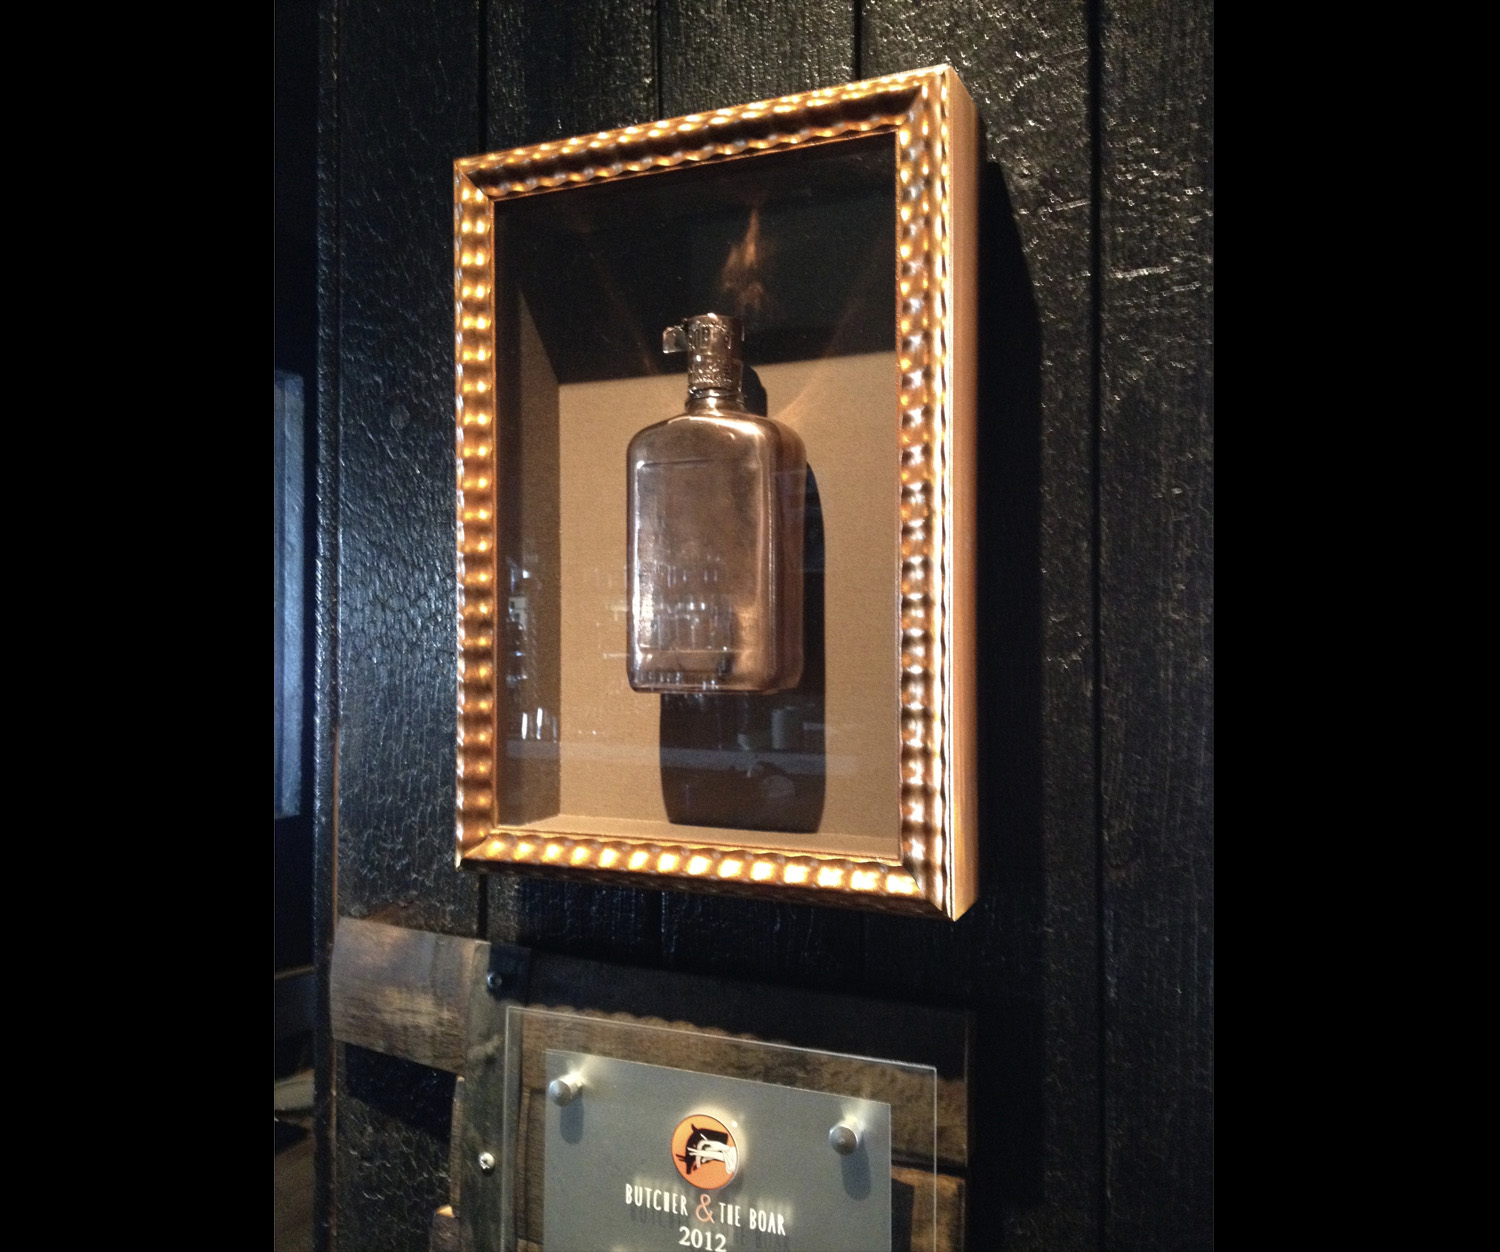 One of many whiskey bottles that we have framed for The Butcher and the Boar.